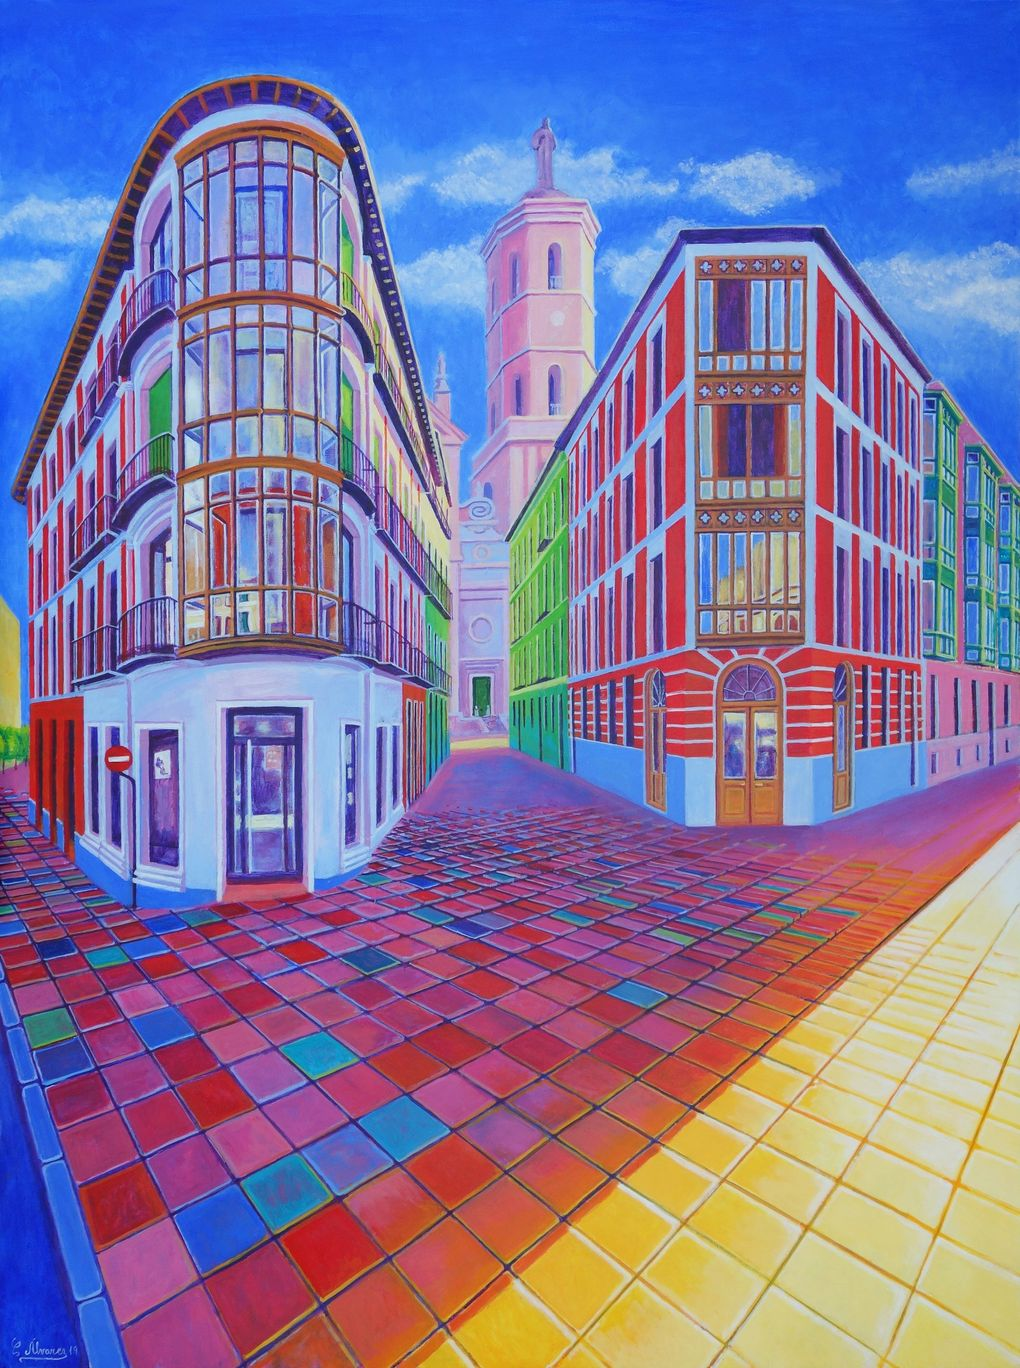 """Conchi Alvarez' """"Calle Cascajares"""" (acrylic on panel, 2019) is one of the works that STOA Gallery, from Malaga, Spain, will be showing at Seattle Art Fair 2019. (Courtesy of STOA Gallery)"""